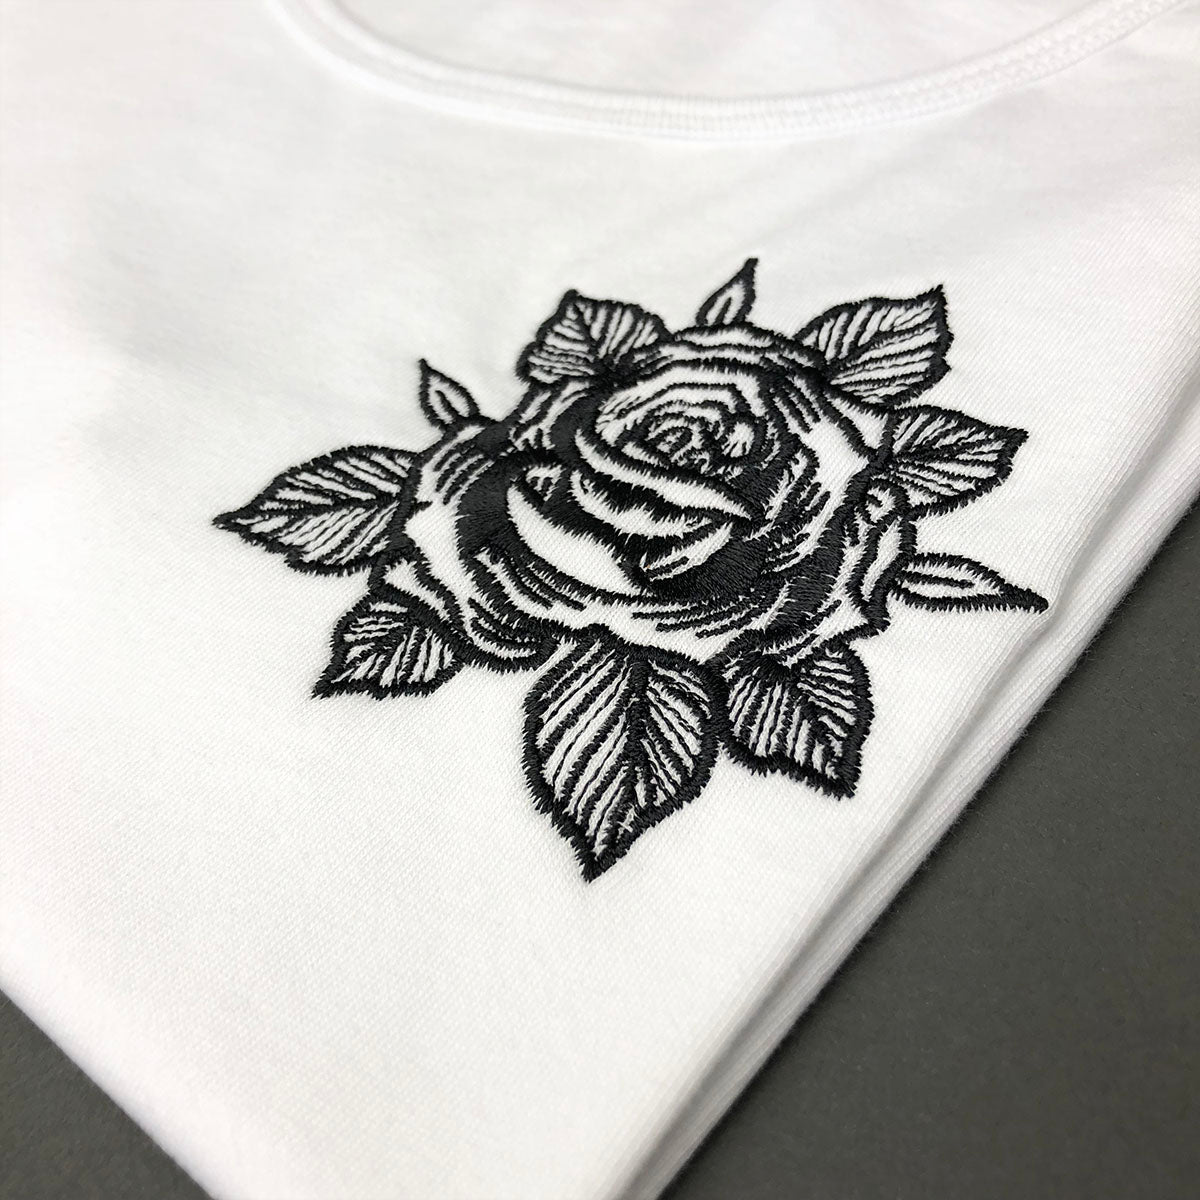 raindeer rosey rose tattoo clothing t-shirt